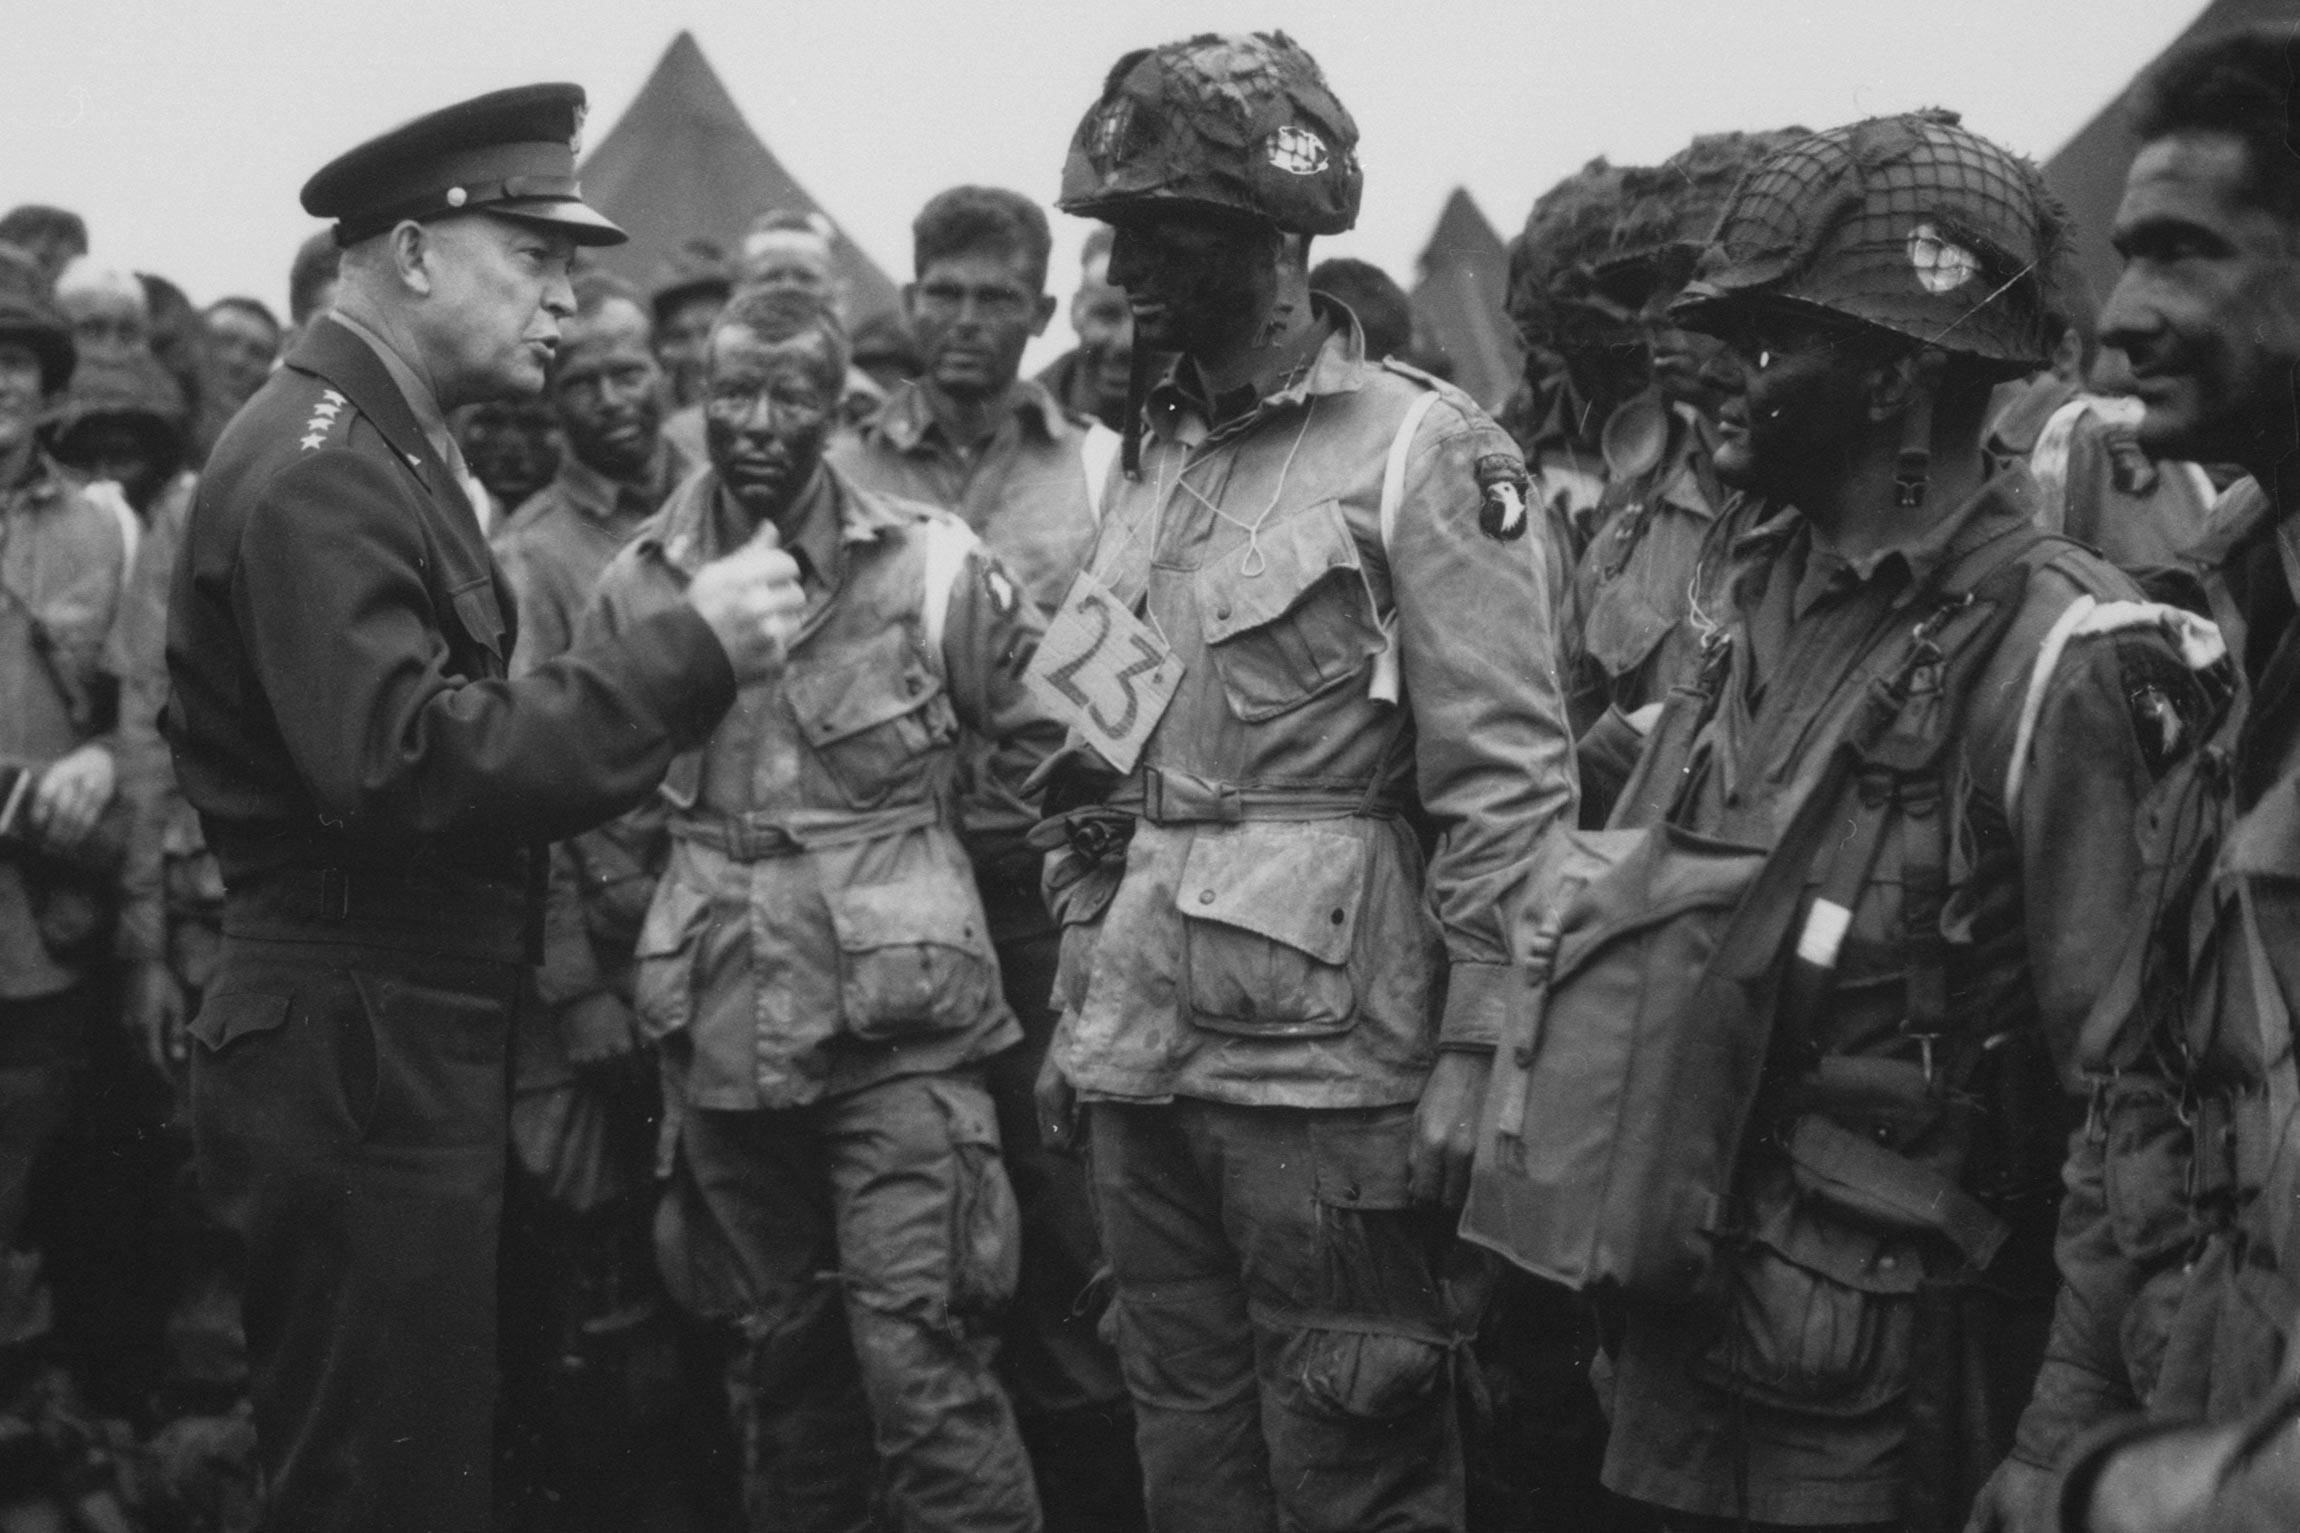 General Dwight D. Eisenhower meeting the troops prior to the Normandy invasion on June 5, 1944.